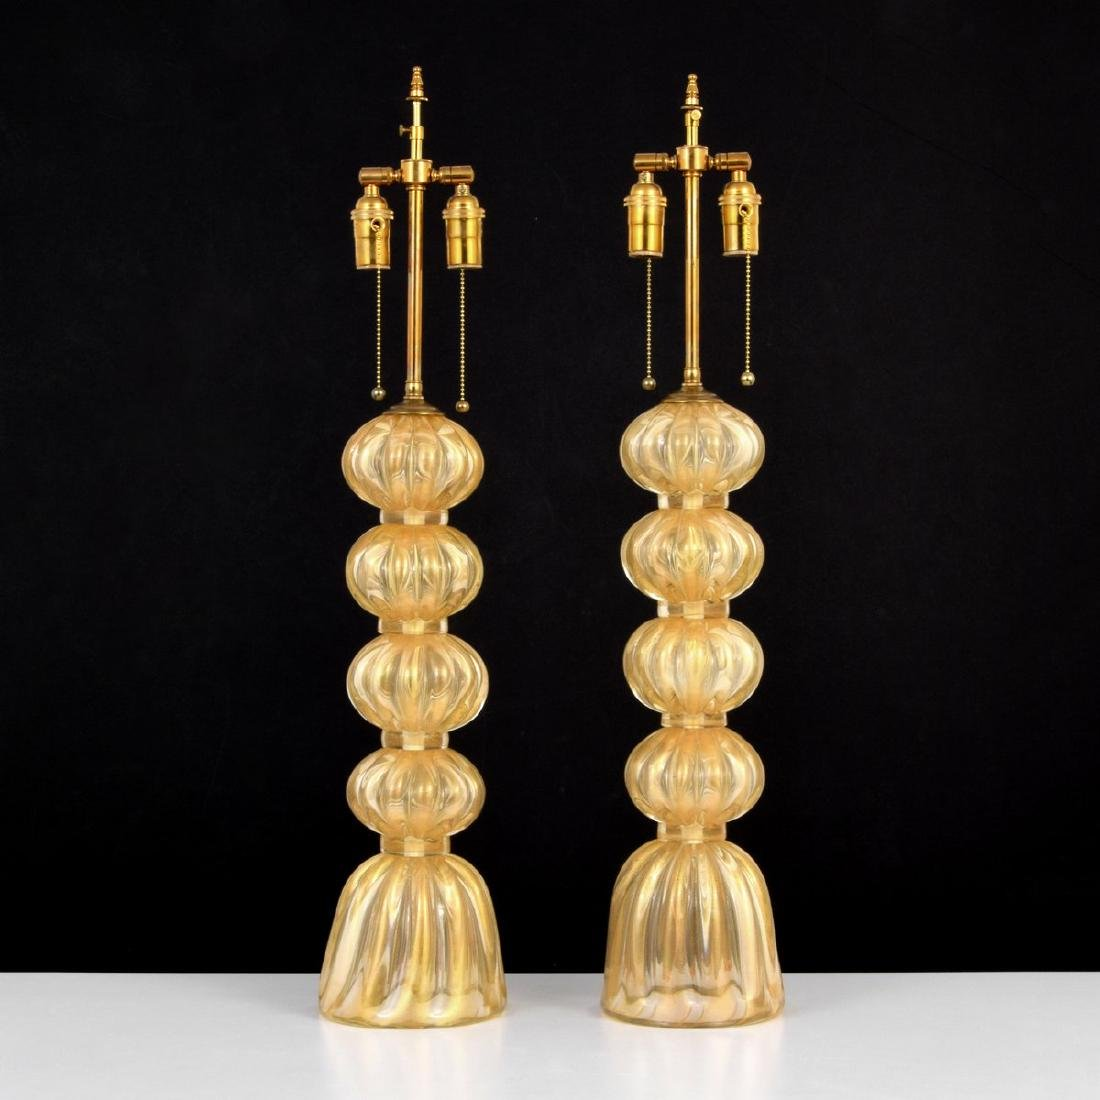 Pair of Large Murano Lamps, Manner of Barovier & Toso